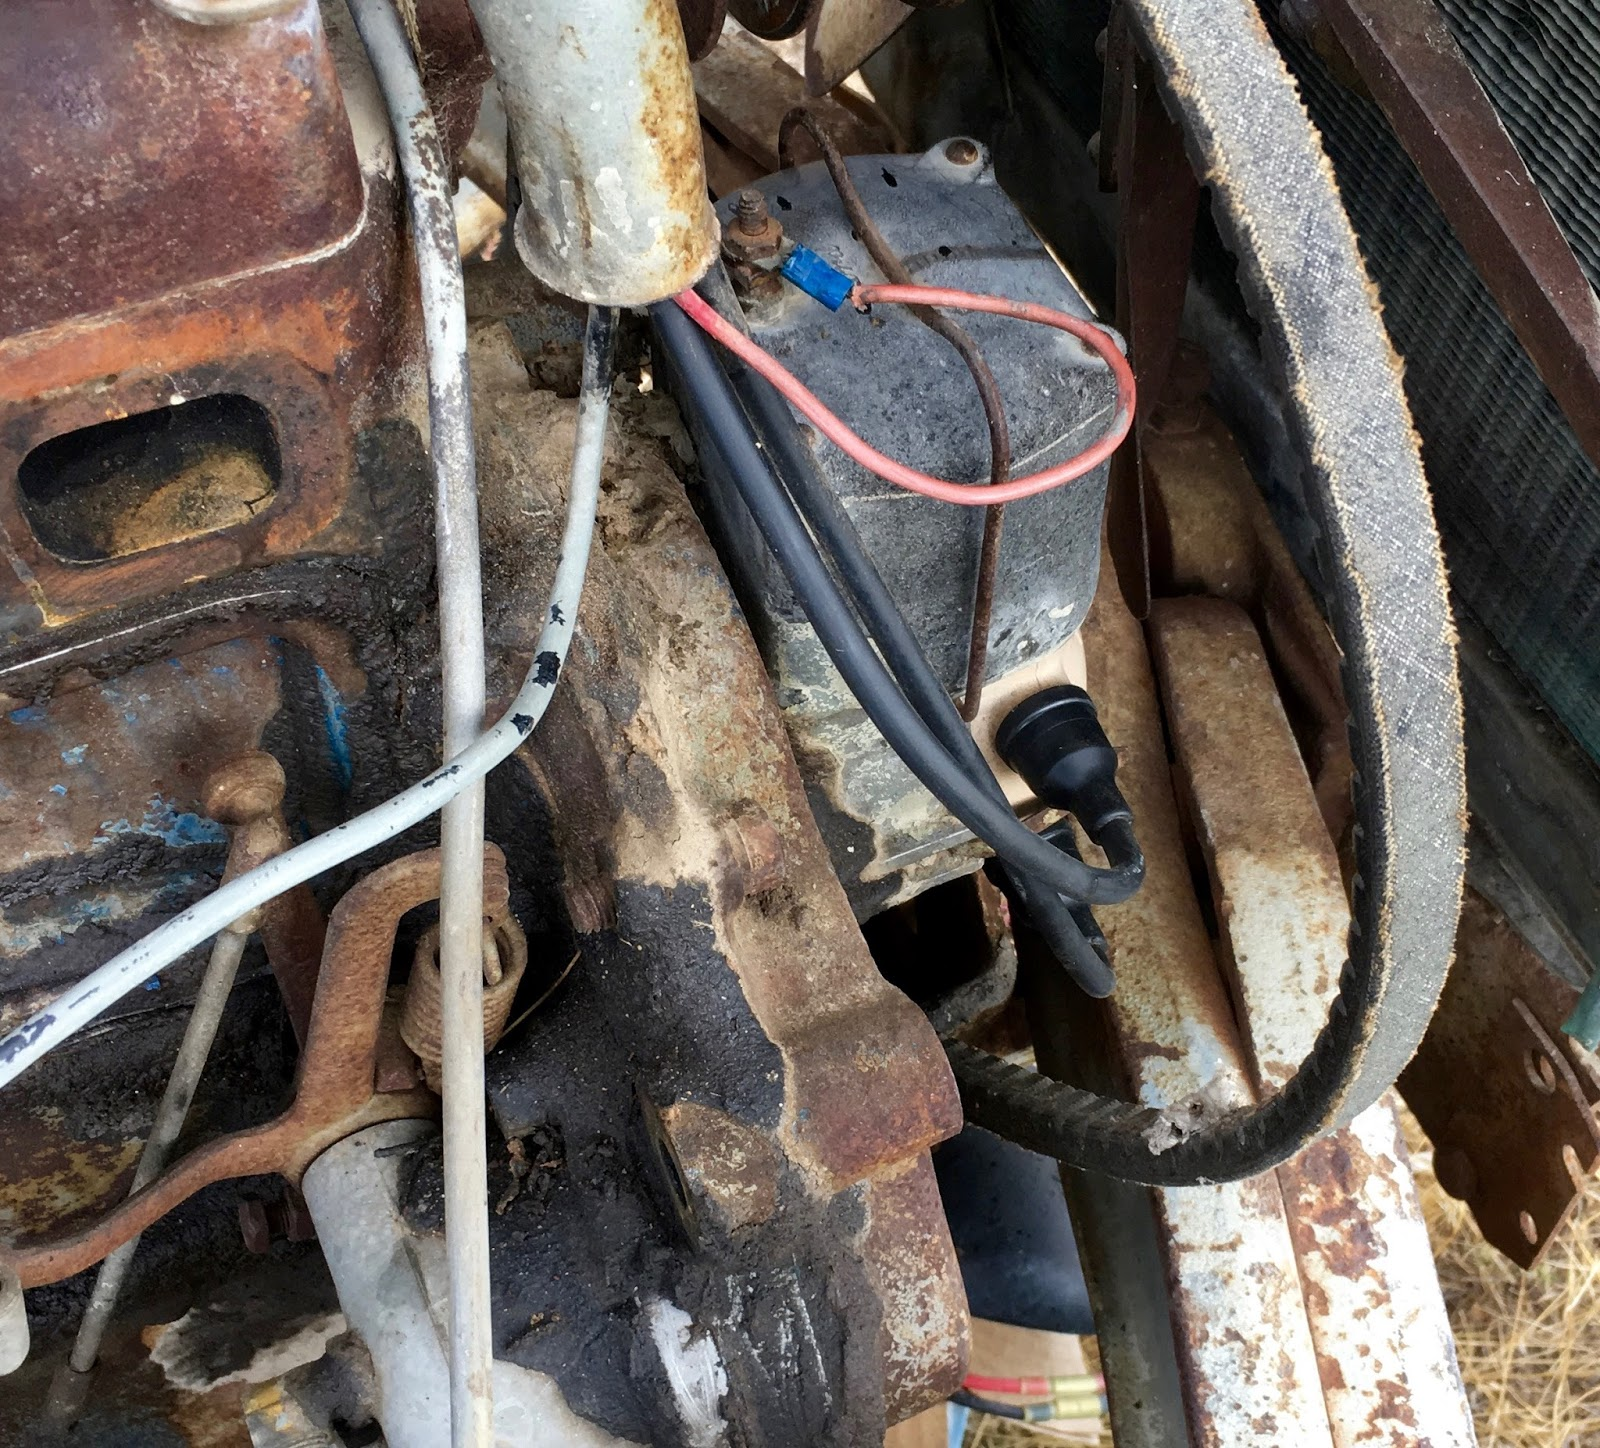 Syonyks Project Blog 1939 Ford 9n Repair Work Electrical Distributor You Should Have Four Brand New Plug Wires All Nicely Routed To The Through Tube